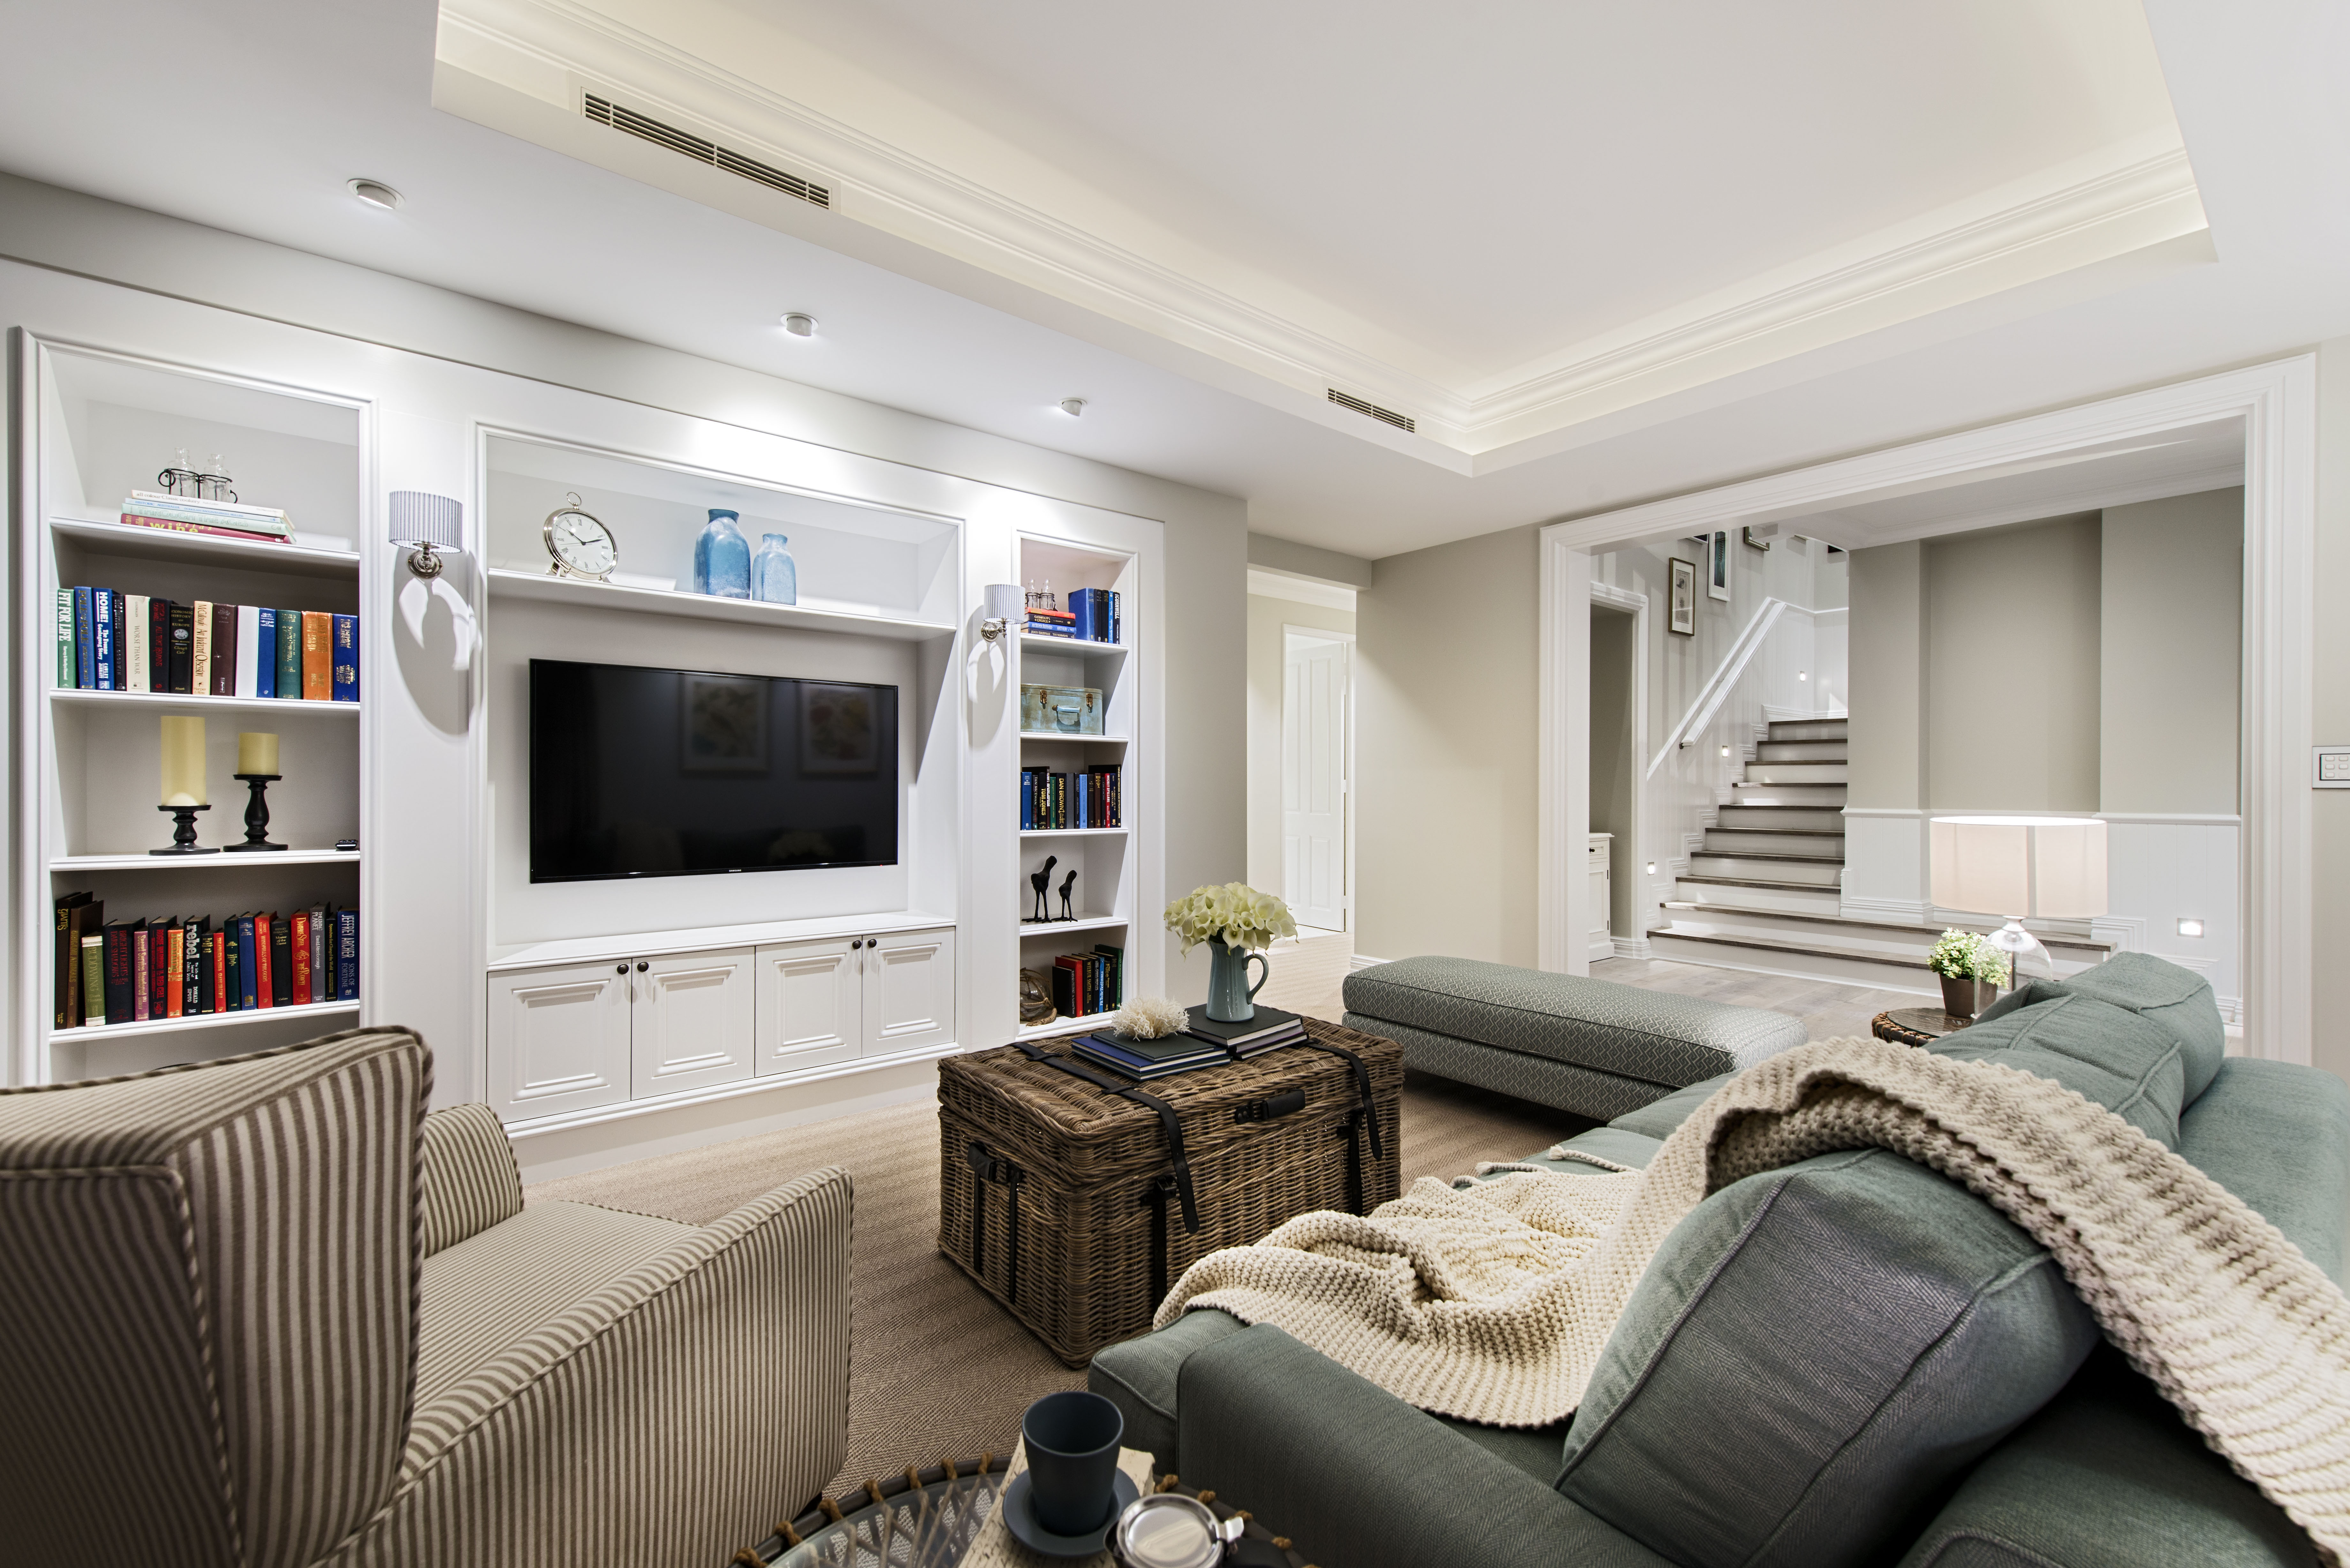 The family room has lots of comfortable, cozy seating, a large home theater, and built-in shelving and bookcases surrounding the media center.